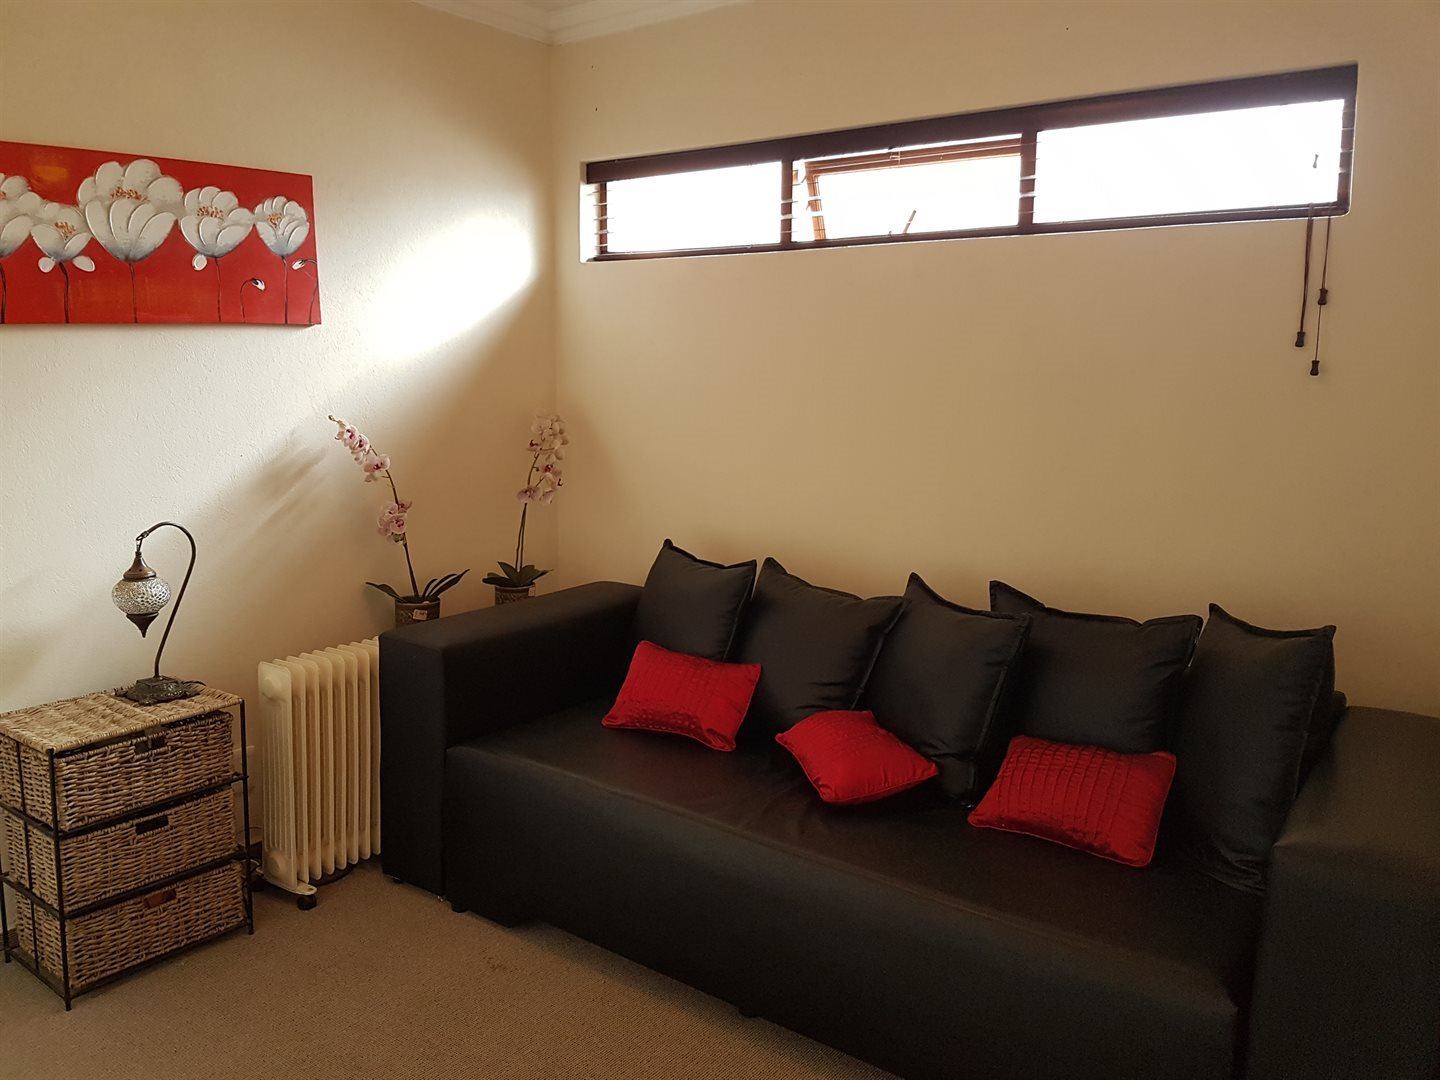 House for sale in beverley a h 4 bedroom 13481652 1 8 for S h bedroom gallery